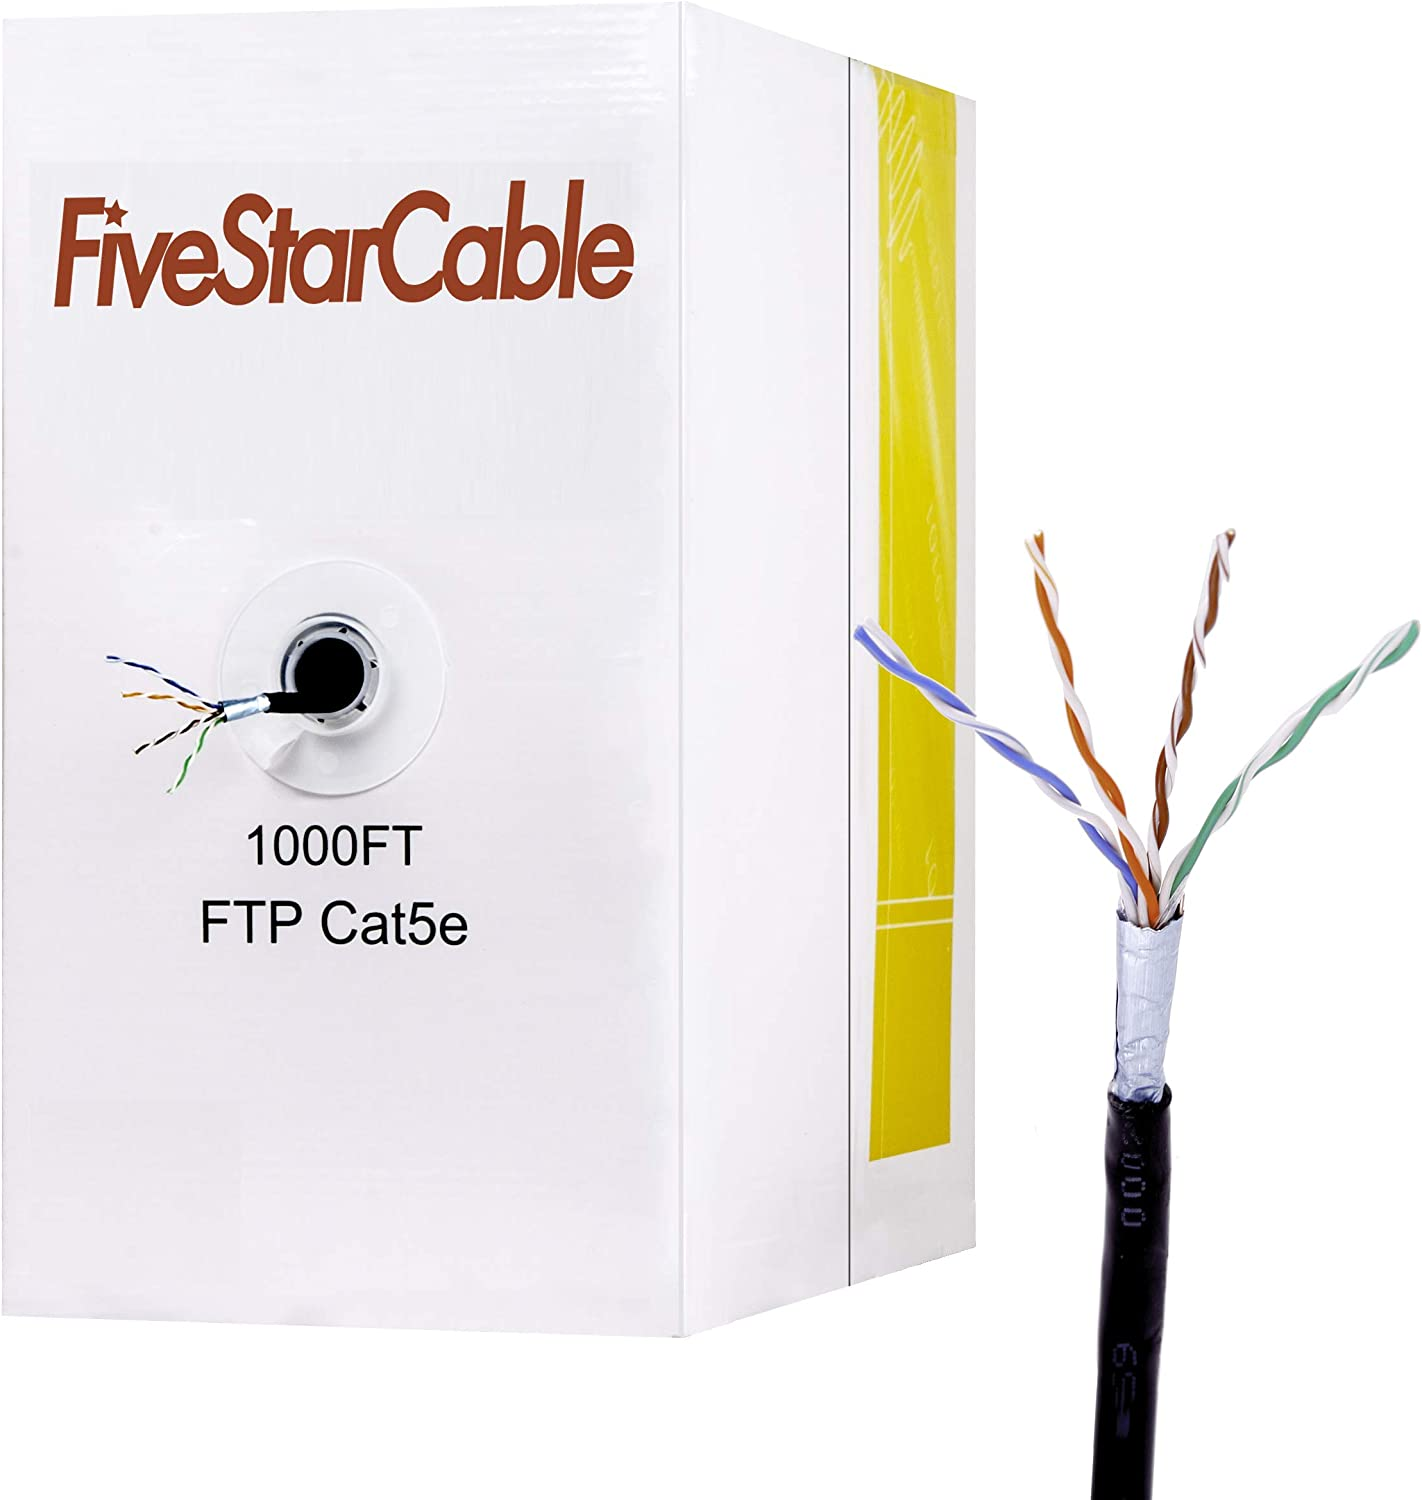 Popular brand in the world FiveStarCable 1000Ft Rapid rise Cat5e FTP Outdoor Solid Shielded Bare 24AWG